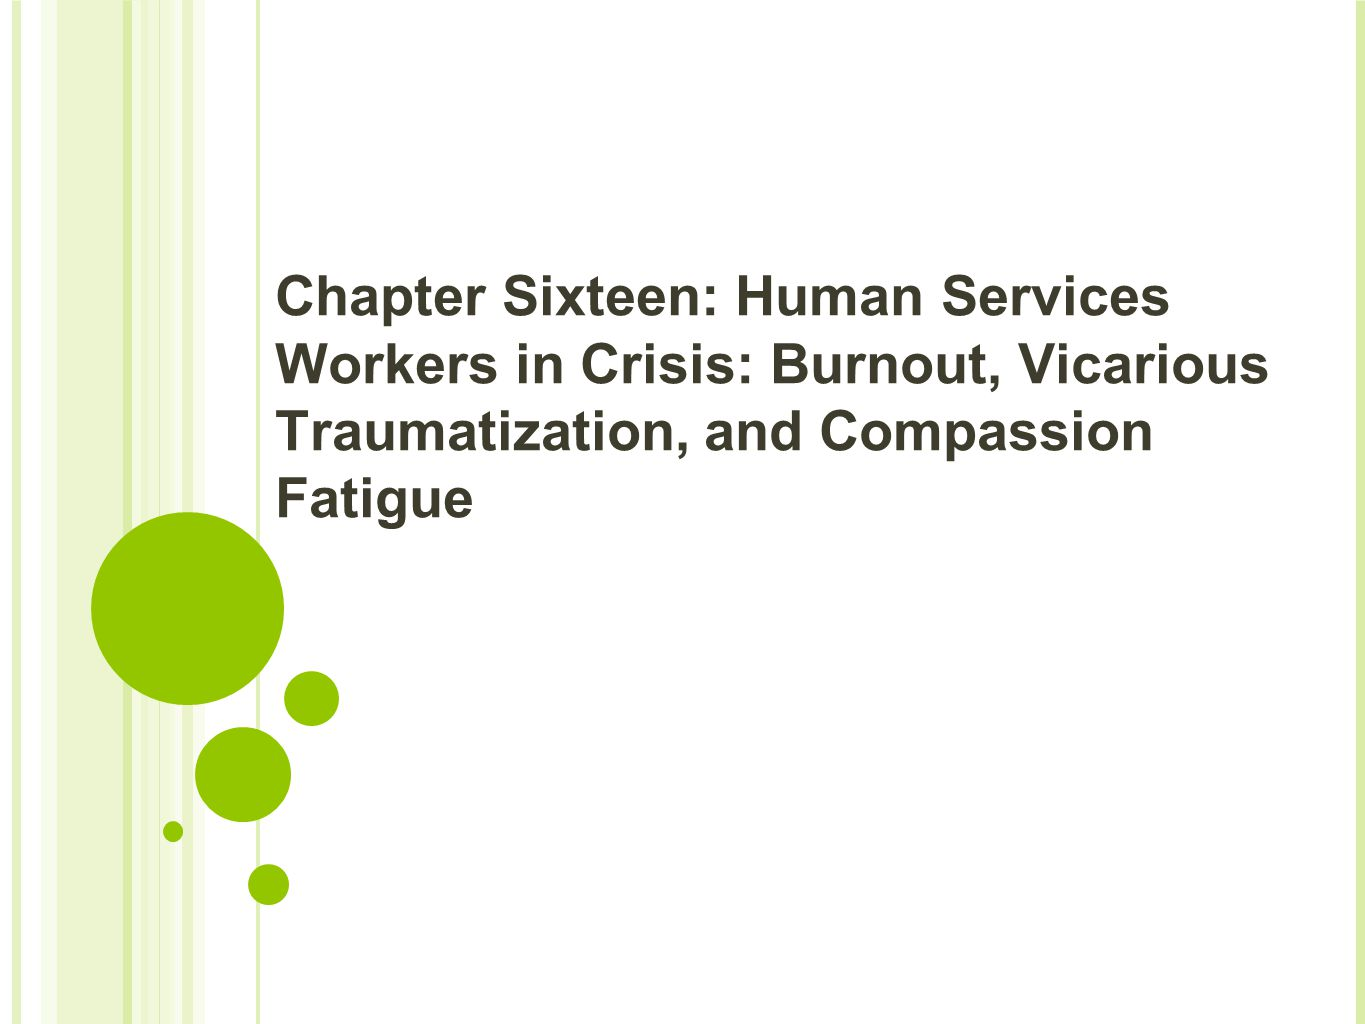 Chapter Sixteen: Human Services Workers in Crisis: Burnout, Vicarious Traumatization, and Compassion Fatigue